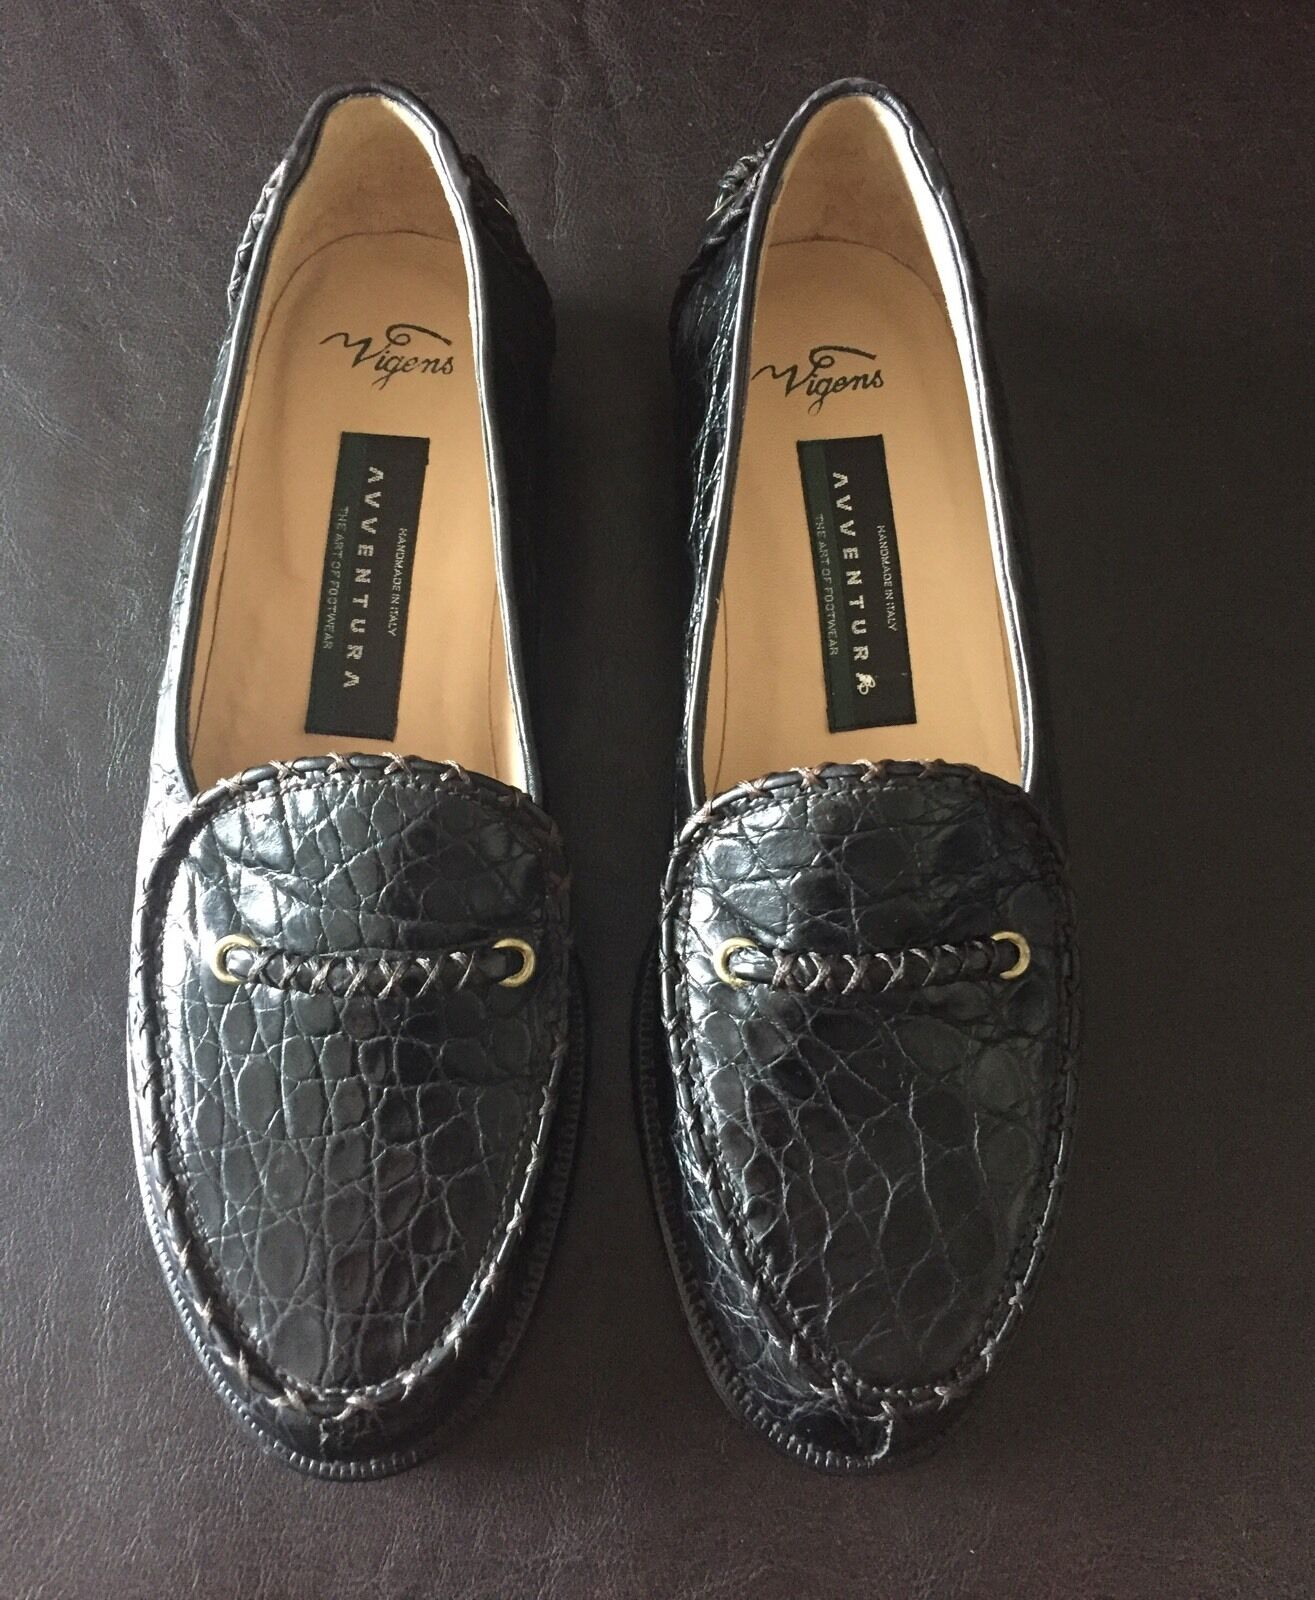 Avventura Vigens nero Crocodile Men's Loafers scarpe